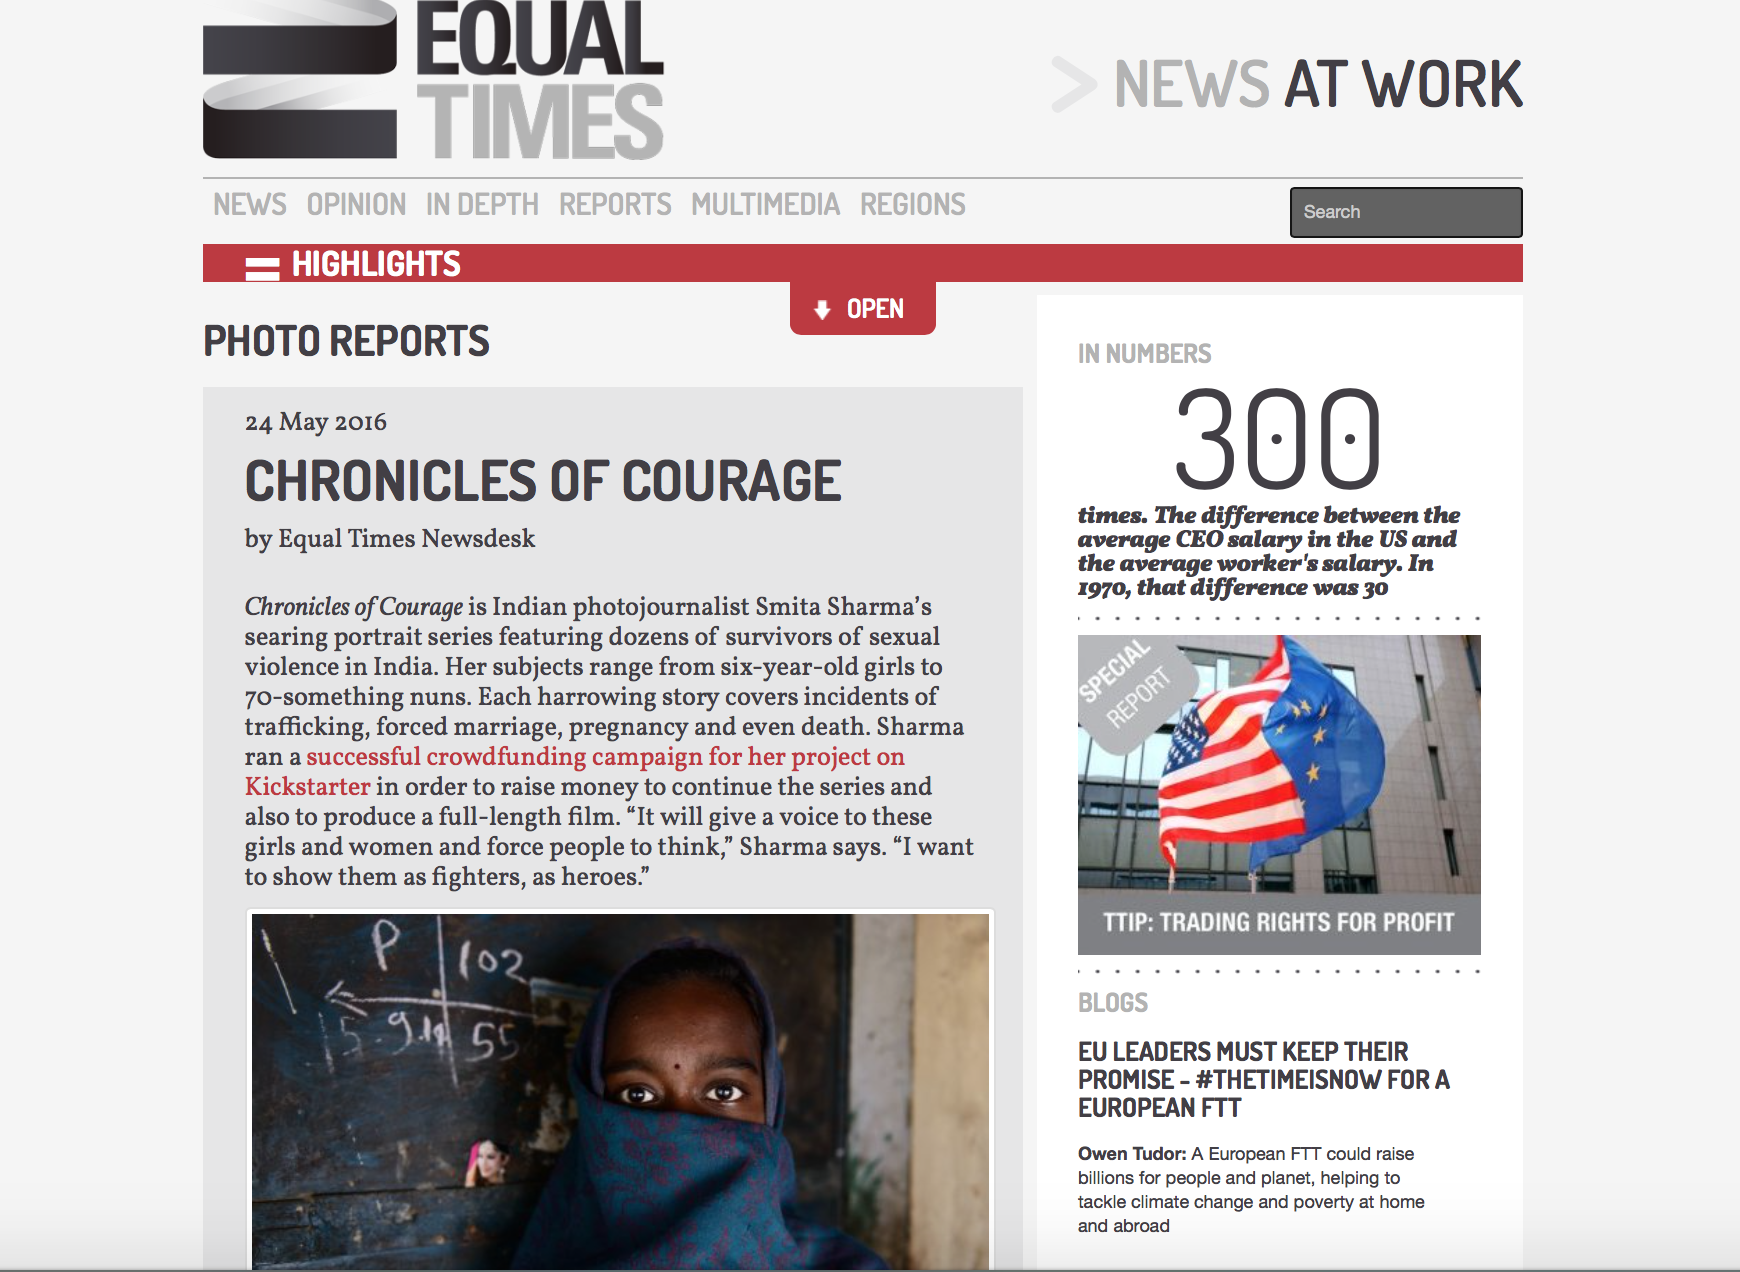 https://www.equaltimes.org/chronicles-of-courage#.W4eMbS-B2YU